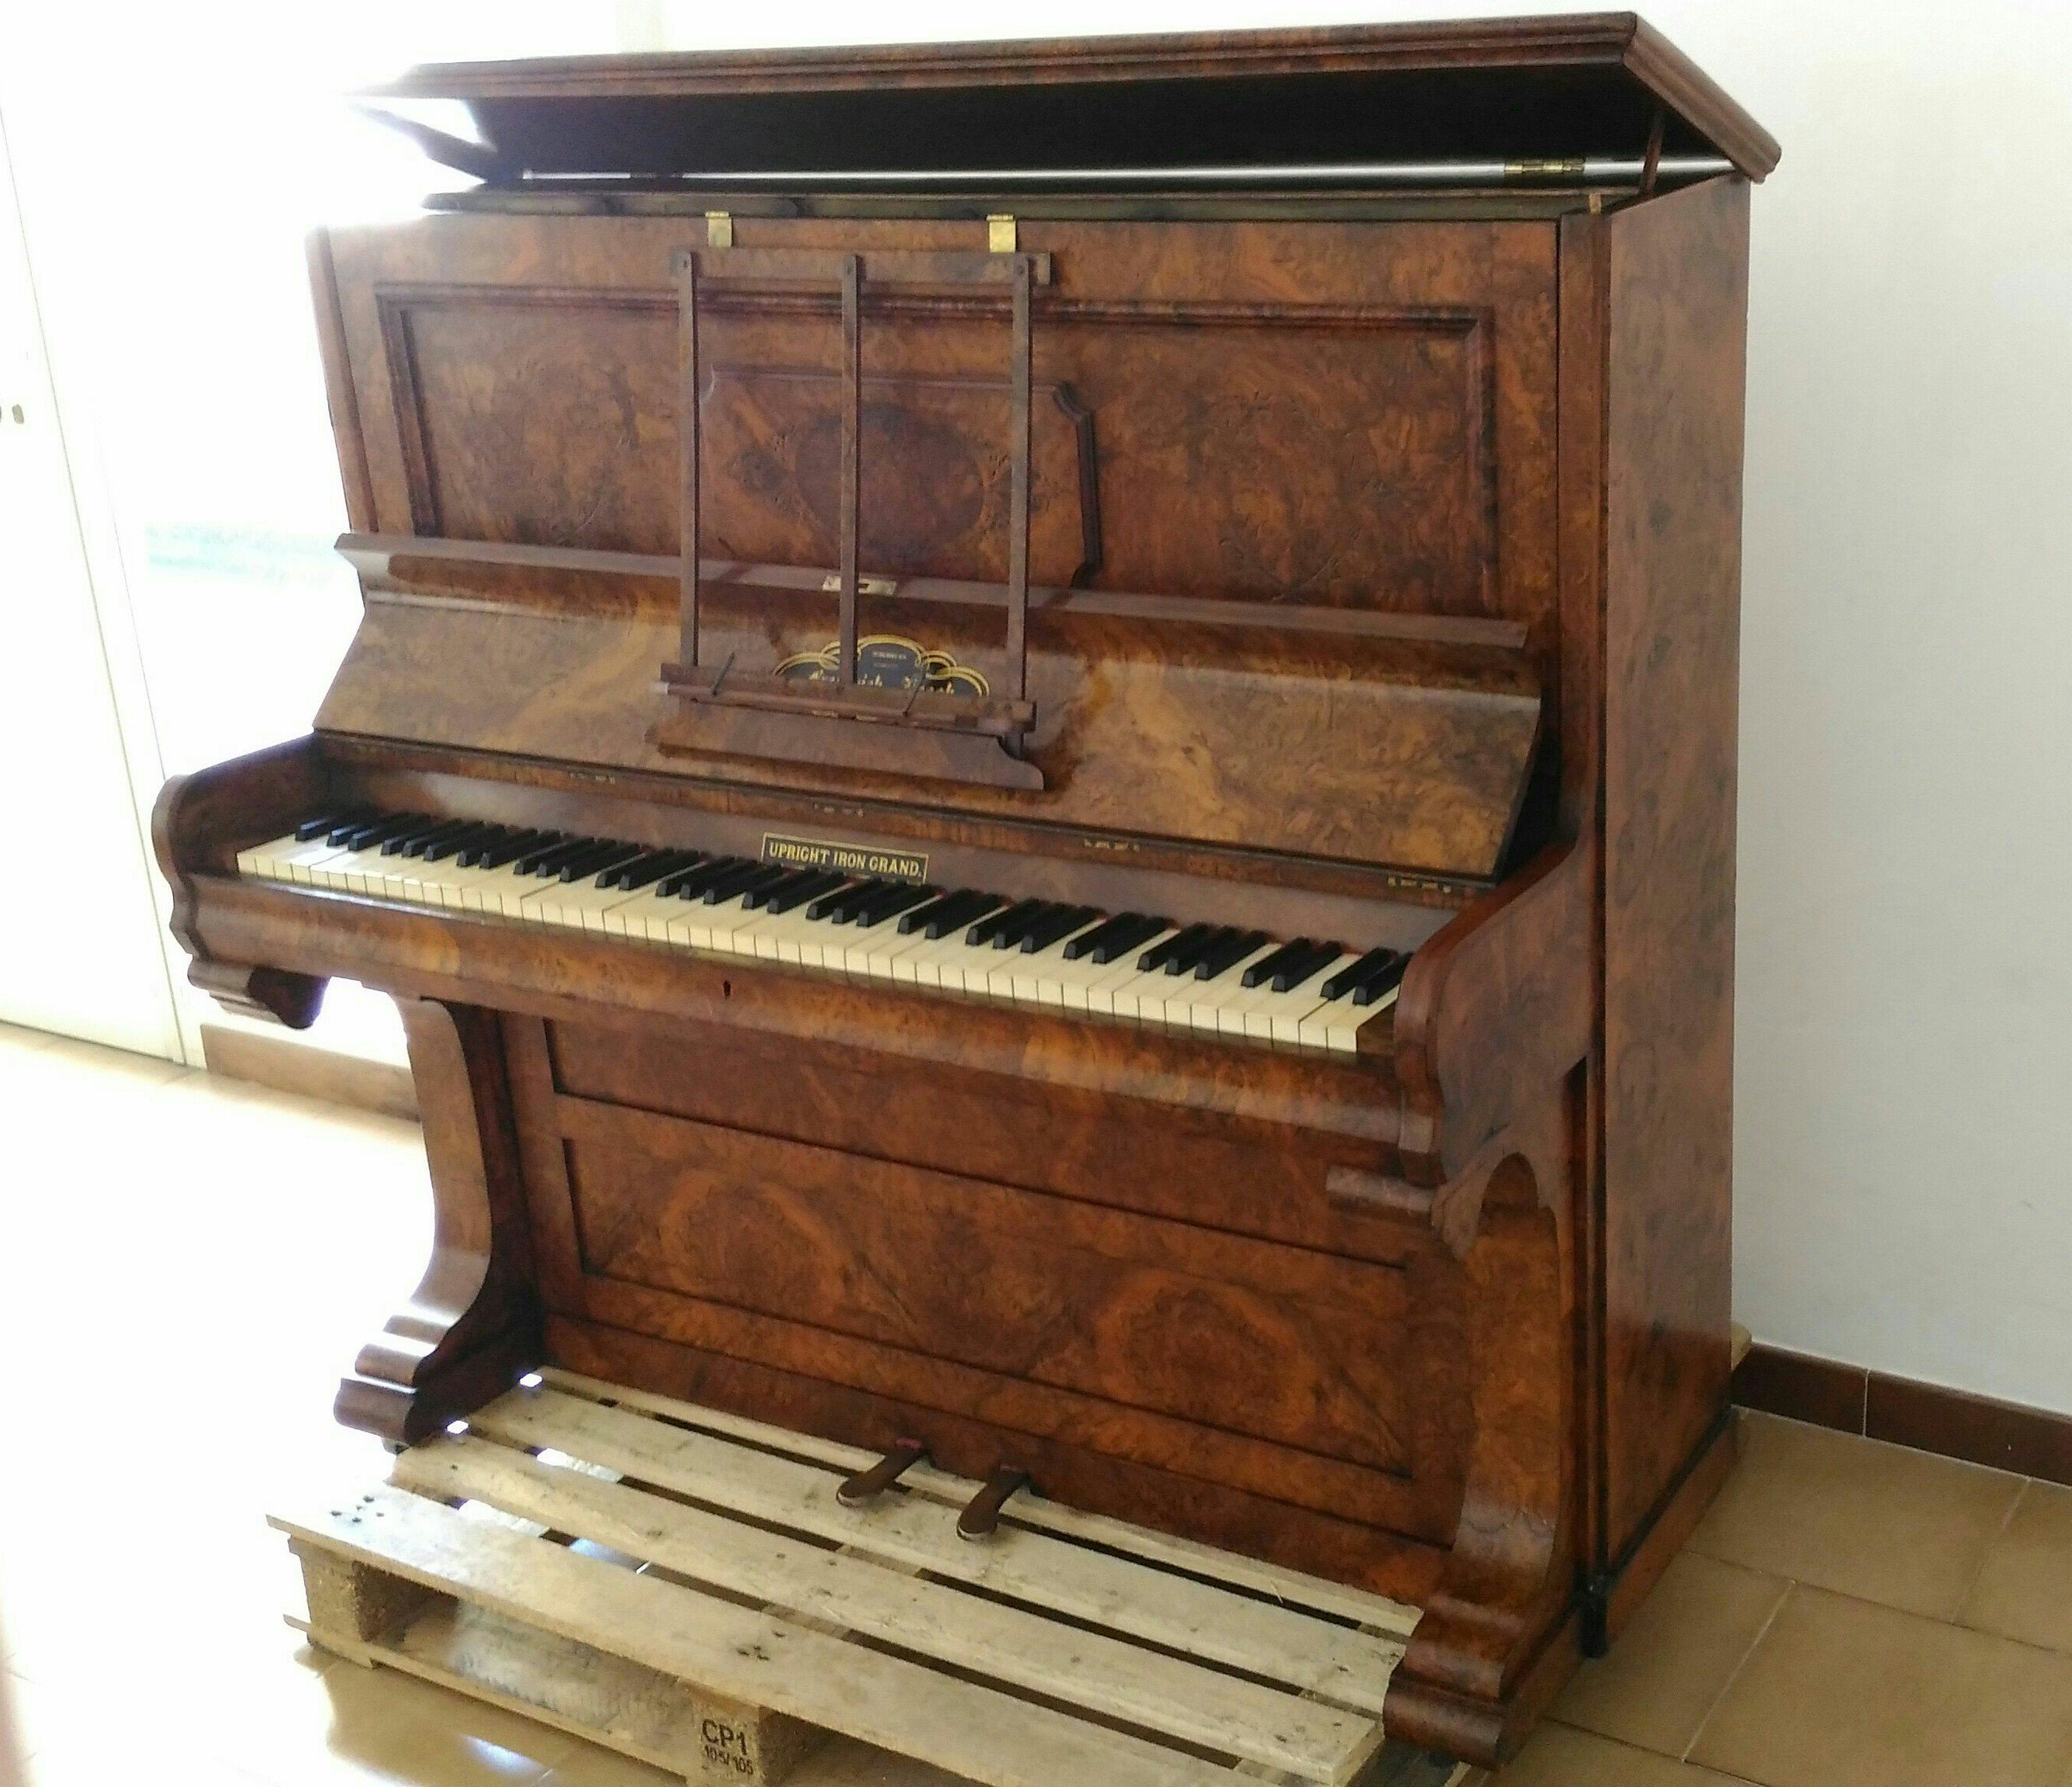 Upright piano Frederick Reogh, 1870 London